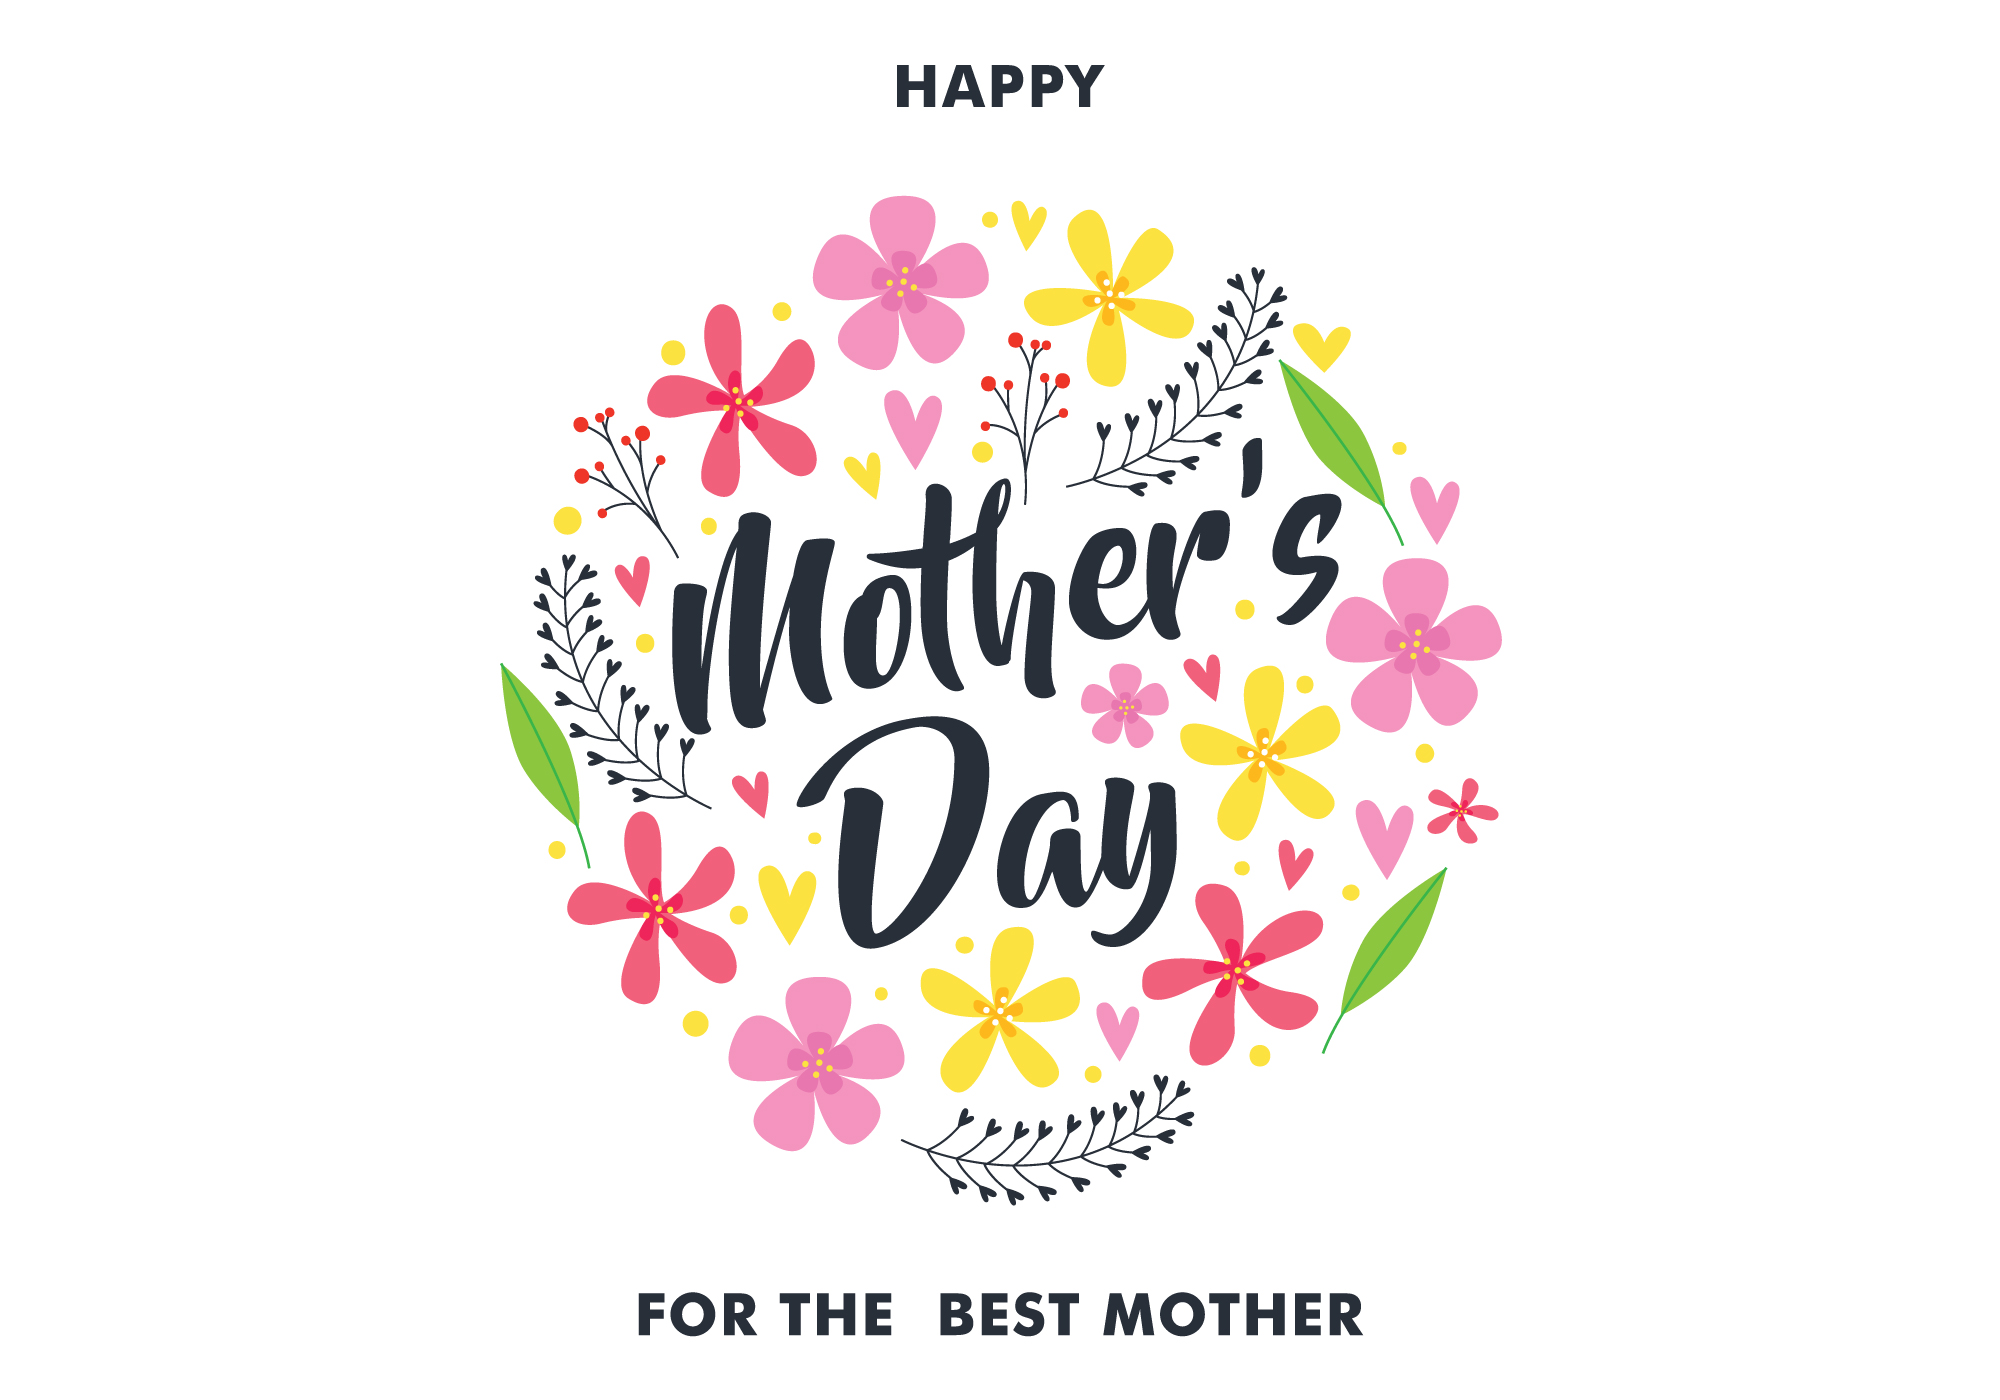 Happy Mothers Day Greeting Card - Download Free Vectors ...